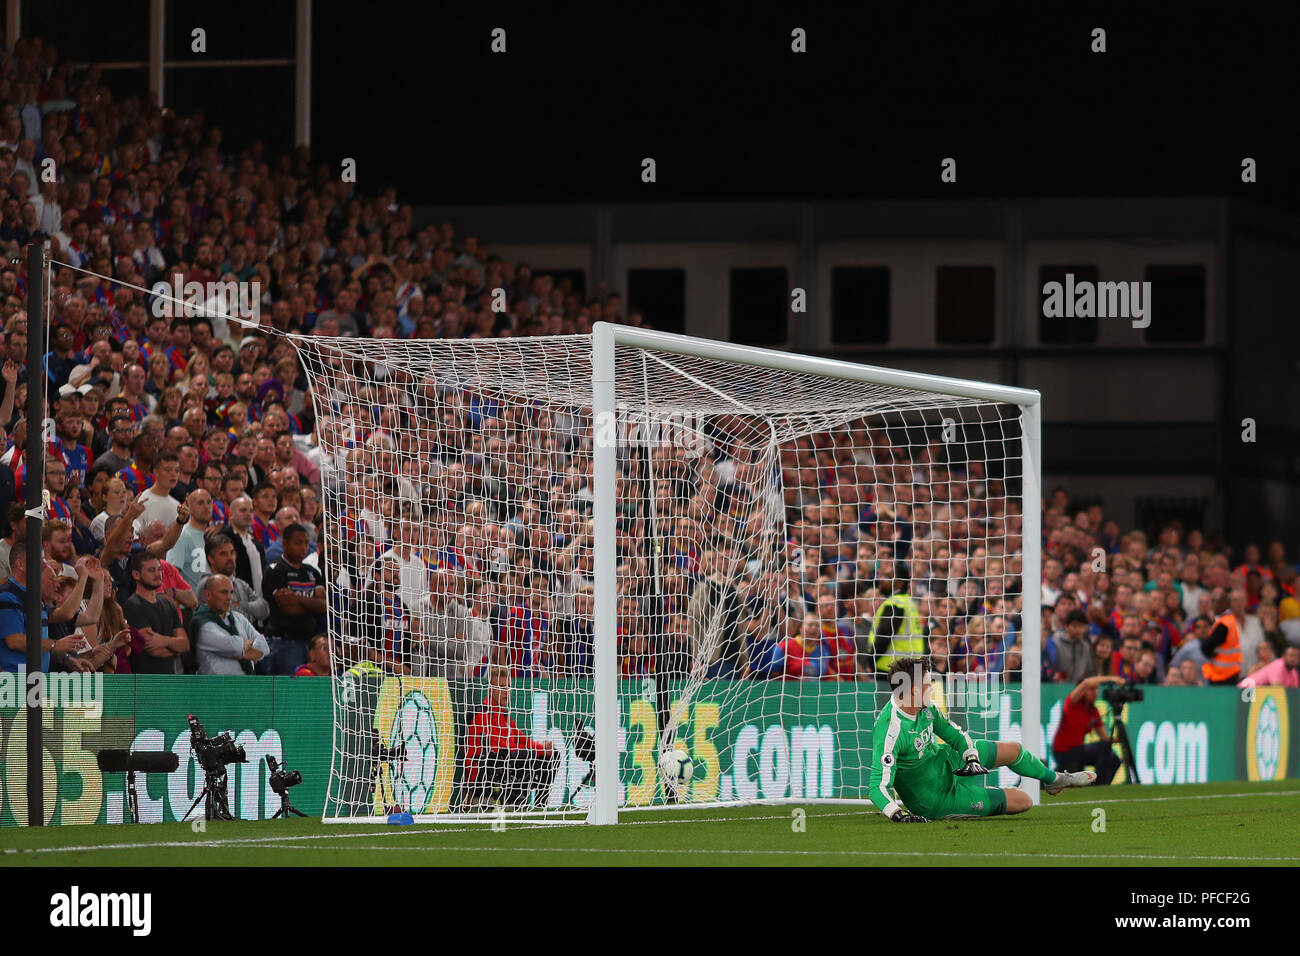 Crystal Palace fans watch on as Wayne Hennessey of Crystal Palace is beaten by a penalty from James Milner of Liverpool - Crystal Palace v Liverpool, Premier League, Selhurst Park, London (Selhurst) - 20th August 2018 Stock Photo